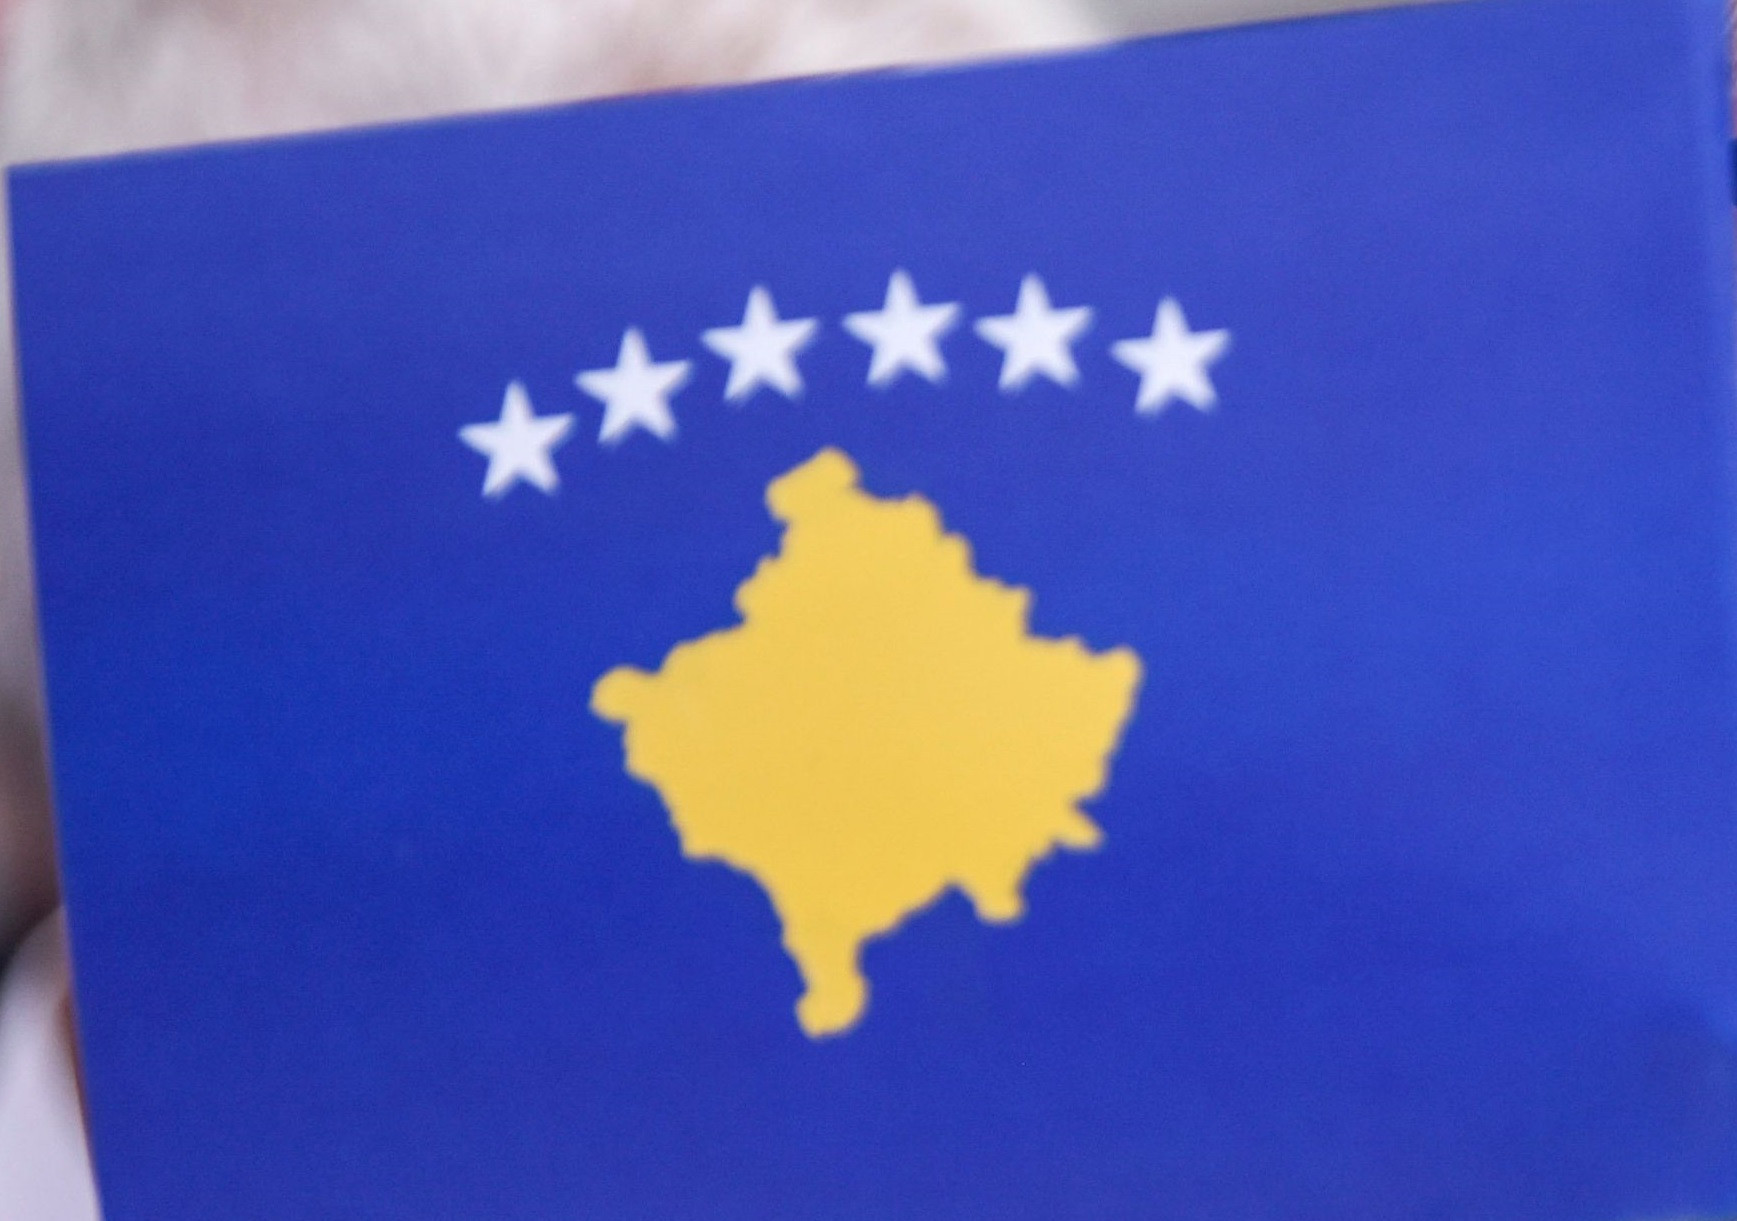 Kosovo becomes latest member of International Mixed Martial Arts Federation